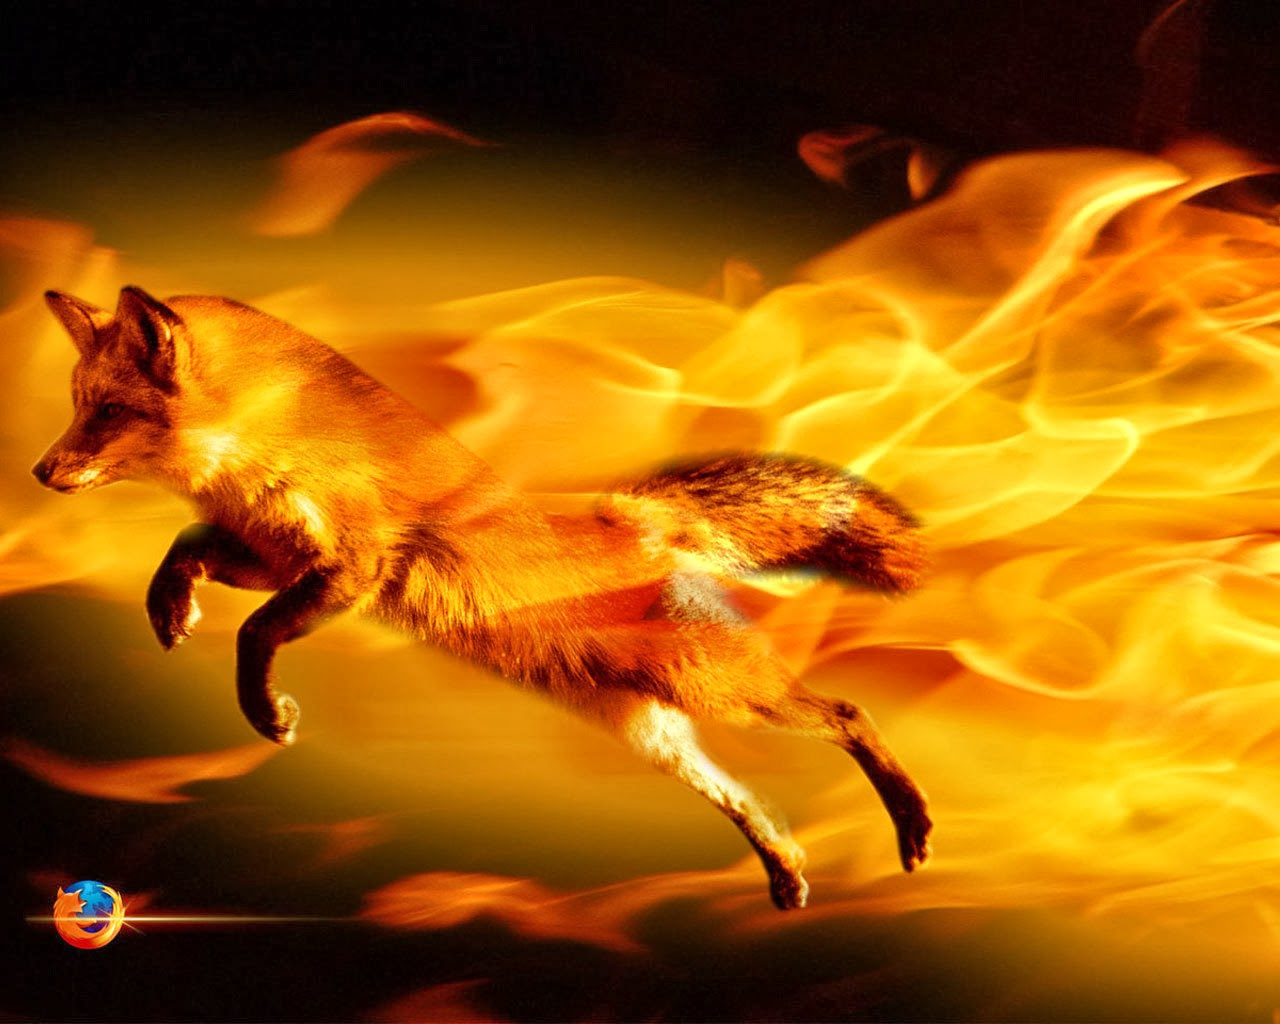 Hd Wallpapers Blog Cool Fire Wallpapers 1280x1024